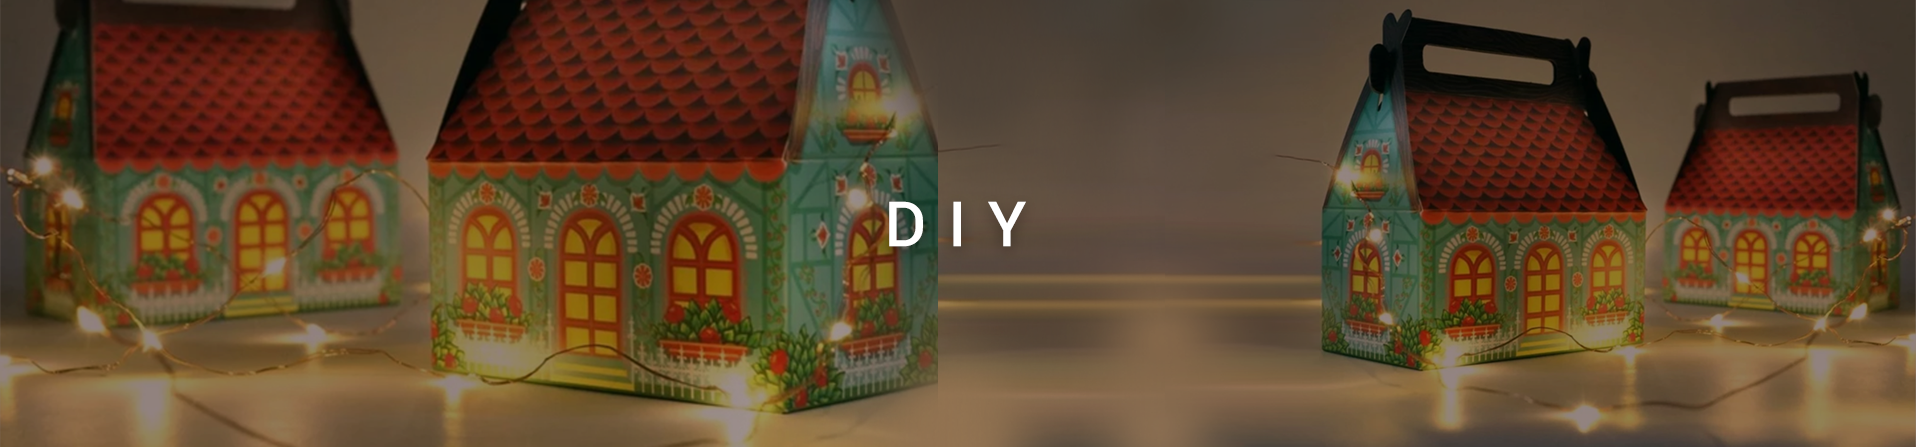 - DIY - Do It Yourself -